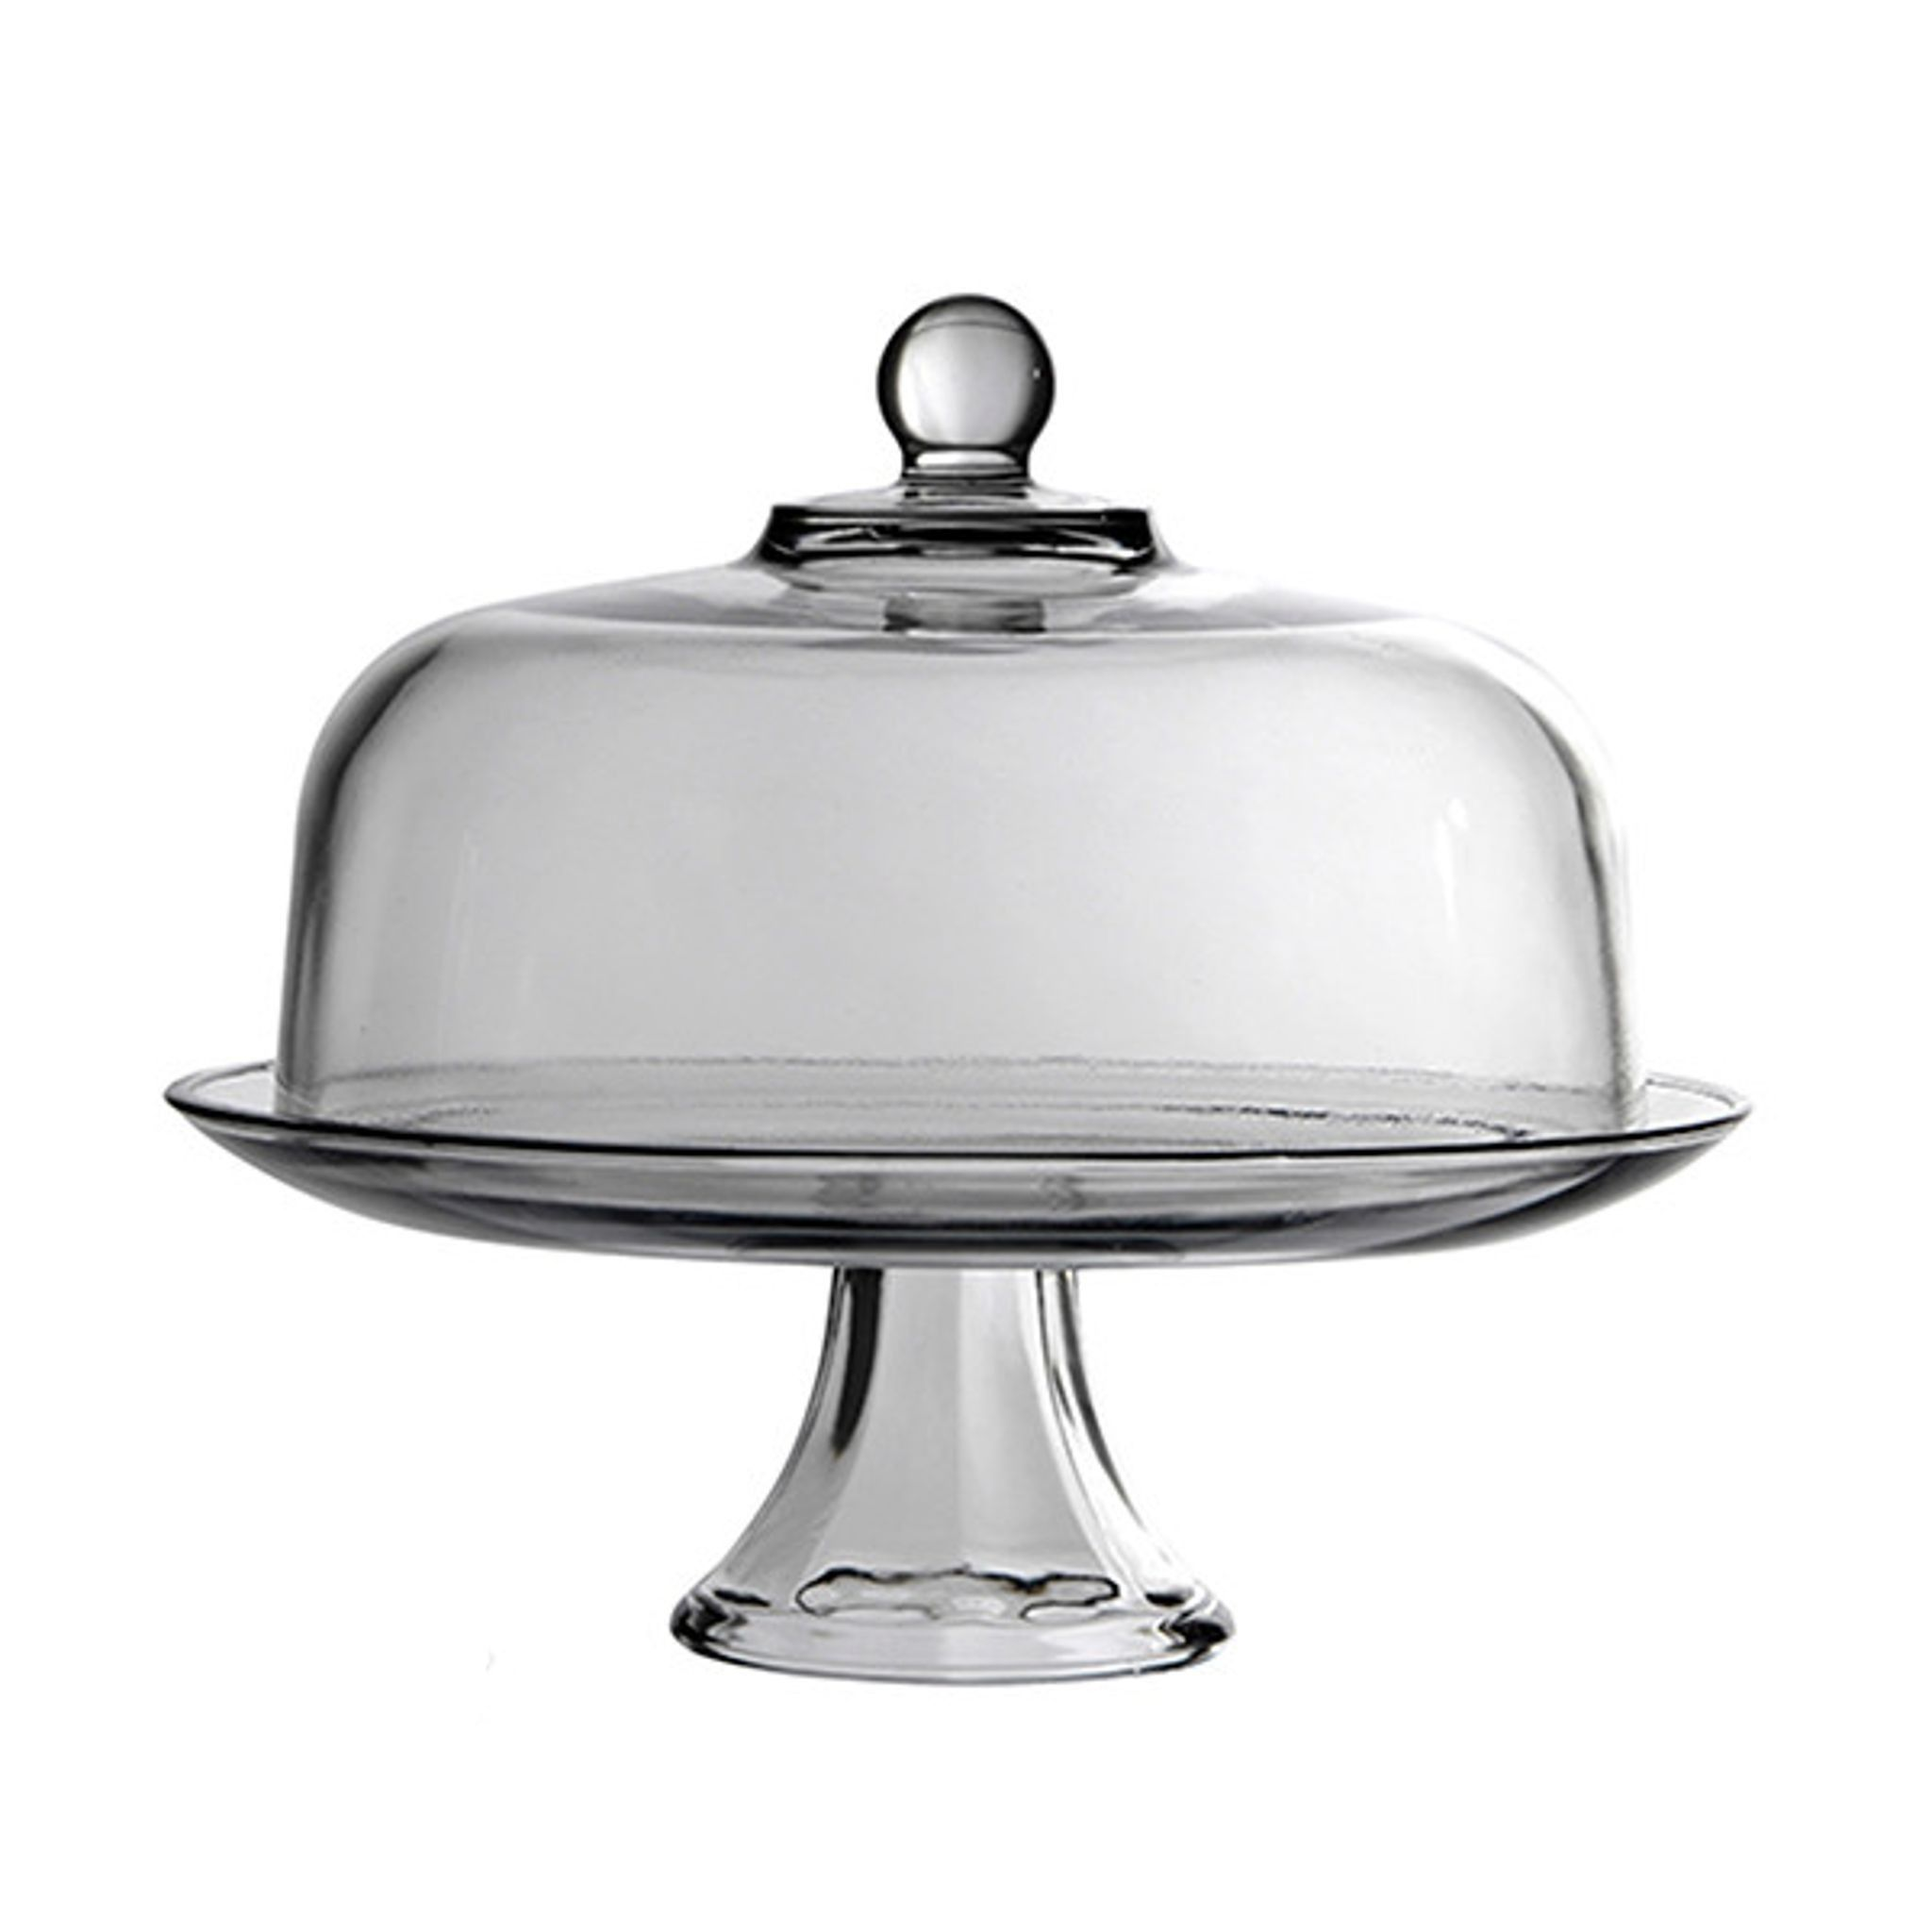 Presence Cake Plate with Dome